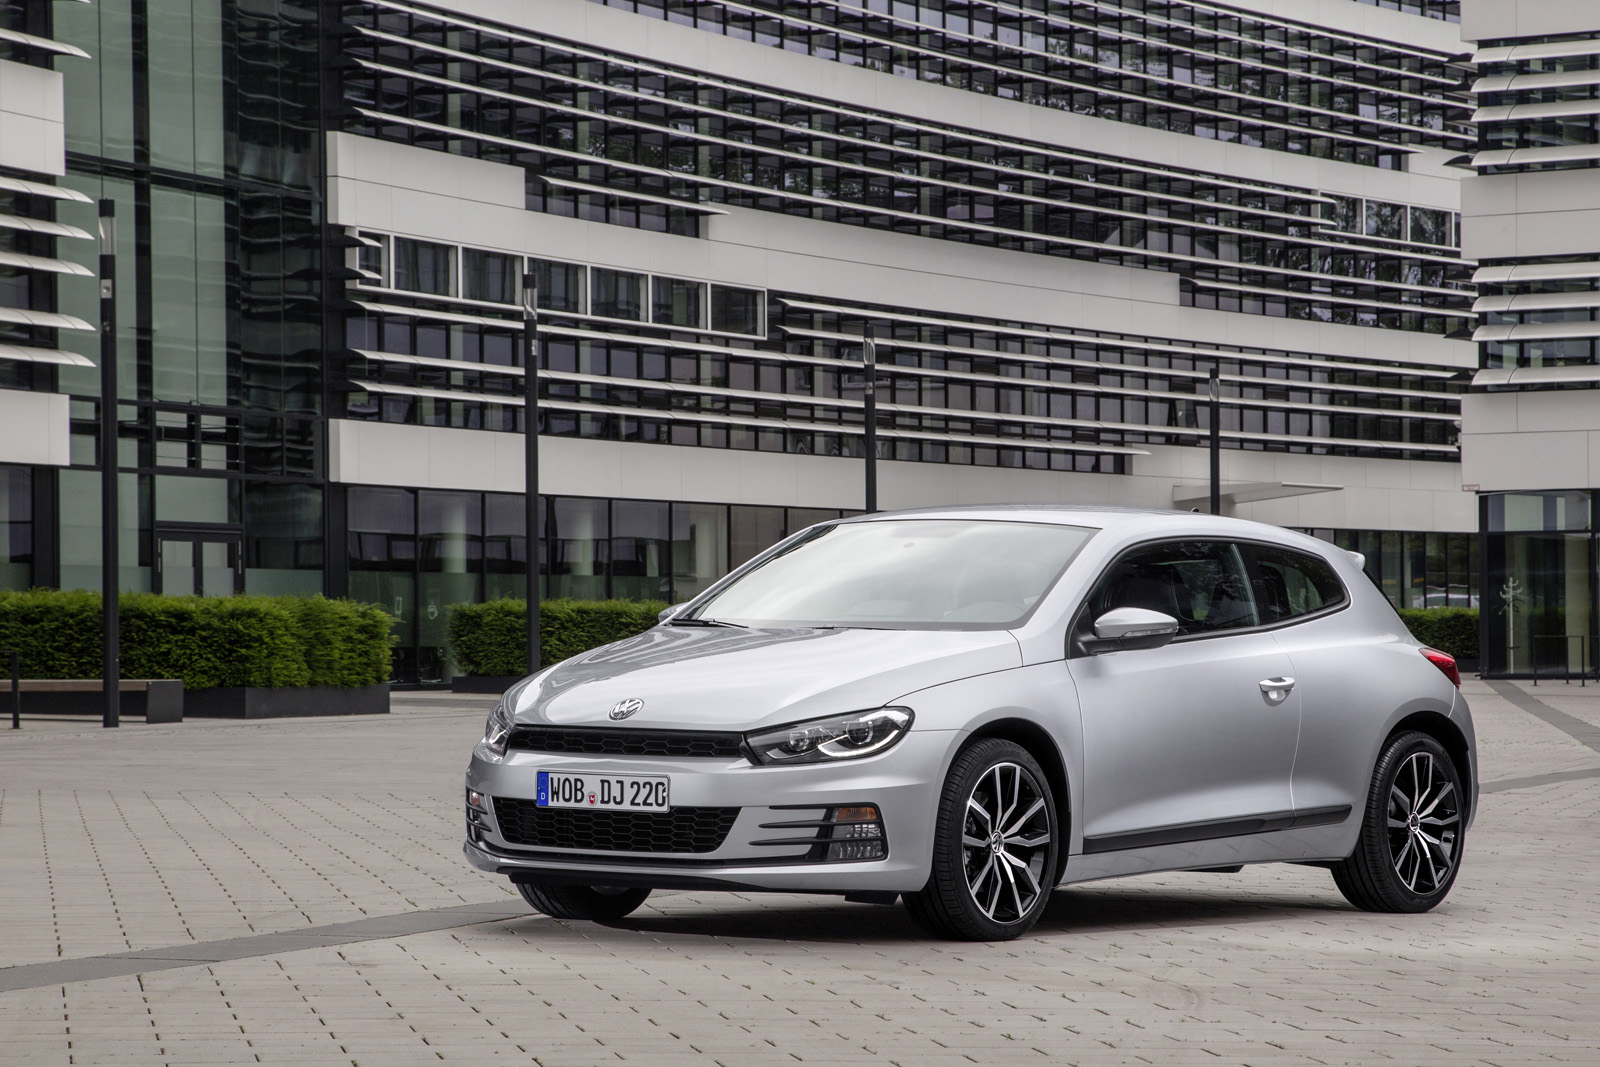 2016 vw scirocco 2 0 tdi 184 hp acceleration test vs 1 4 tsi 160 hp autoevolution. Black Bedroom Furniture Sets. Home Design Ideas